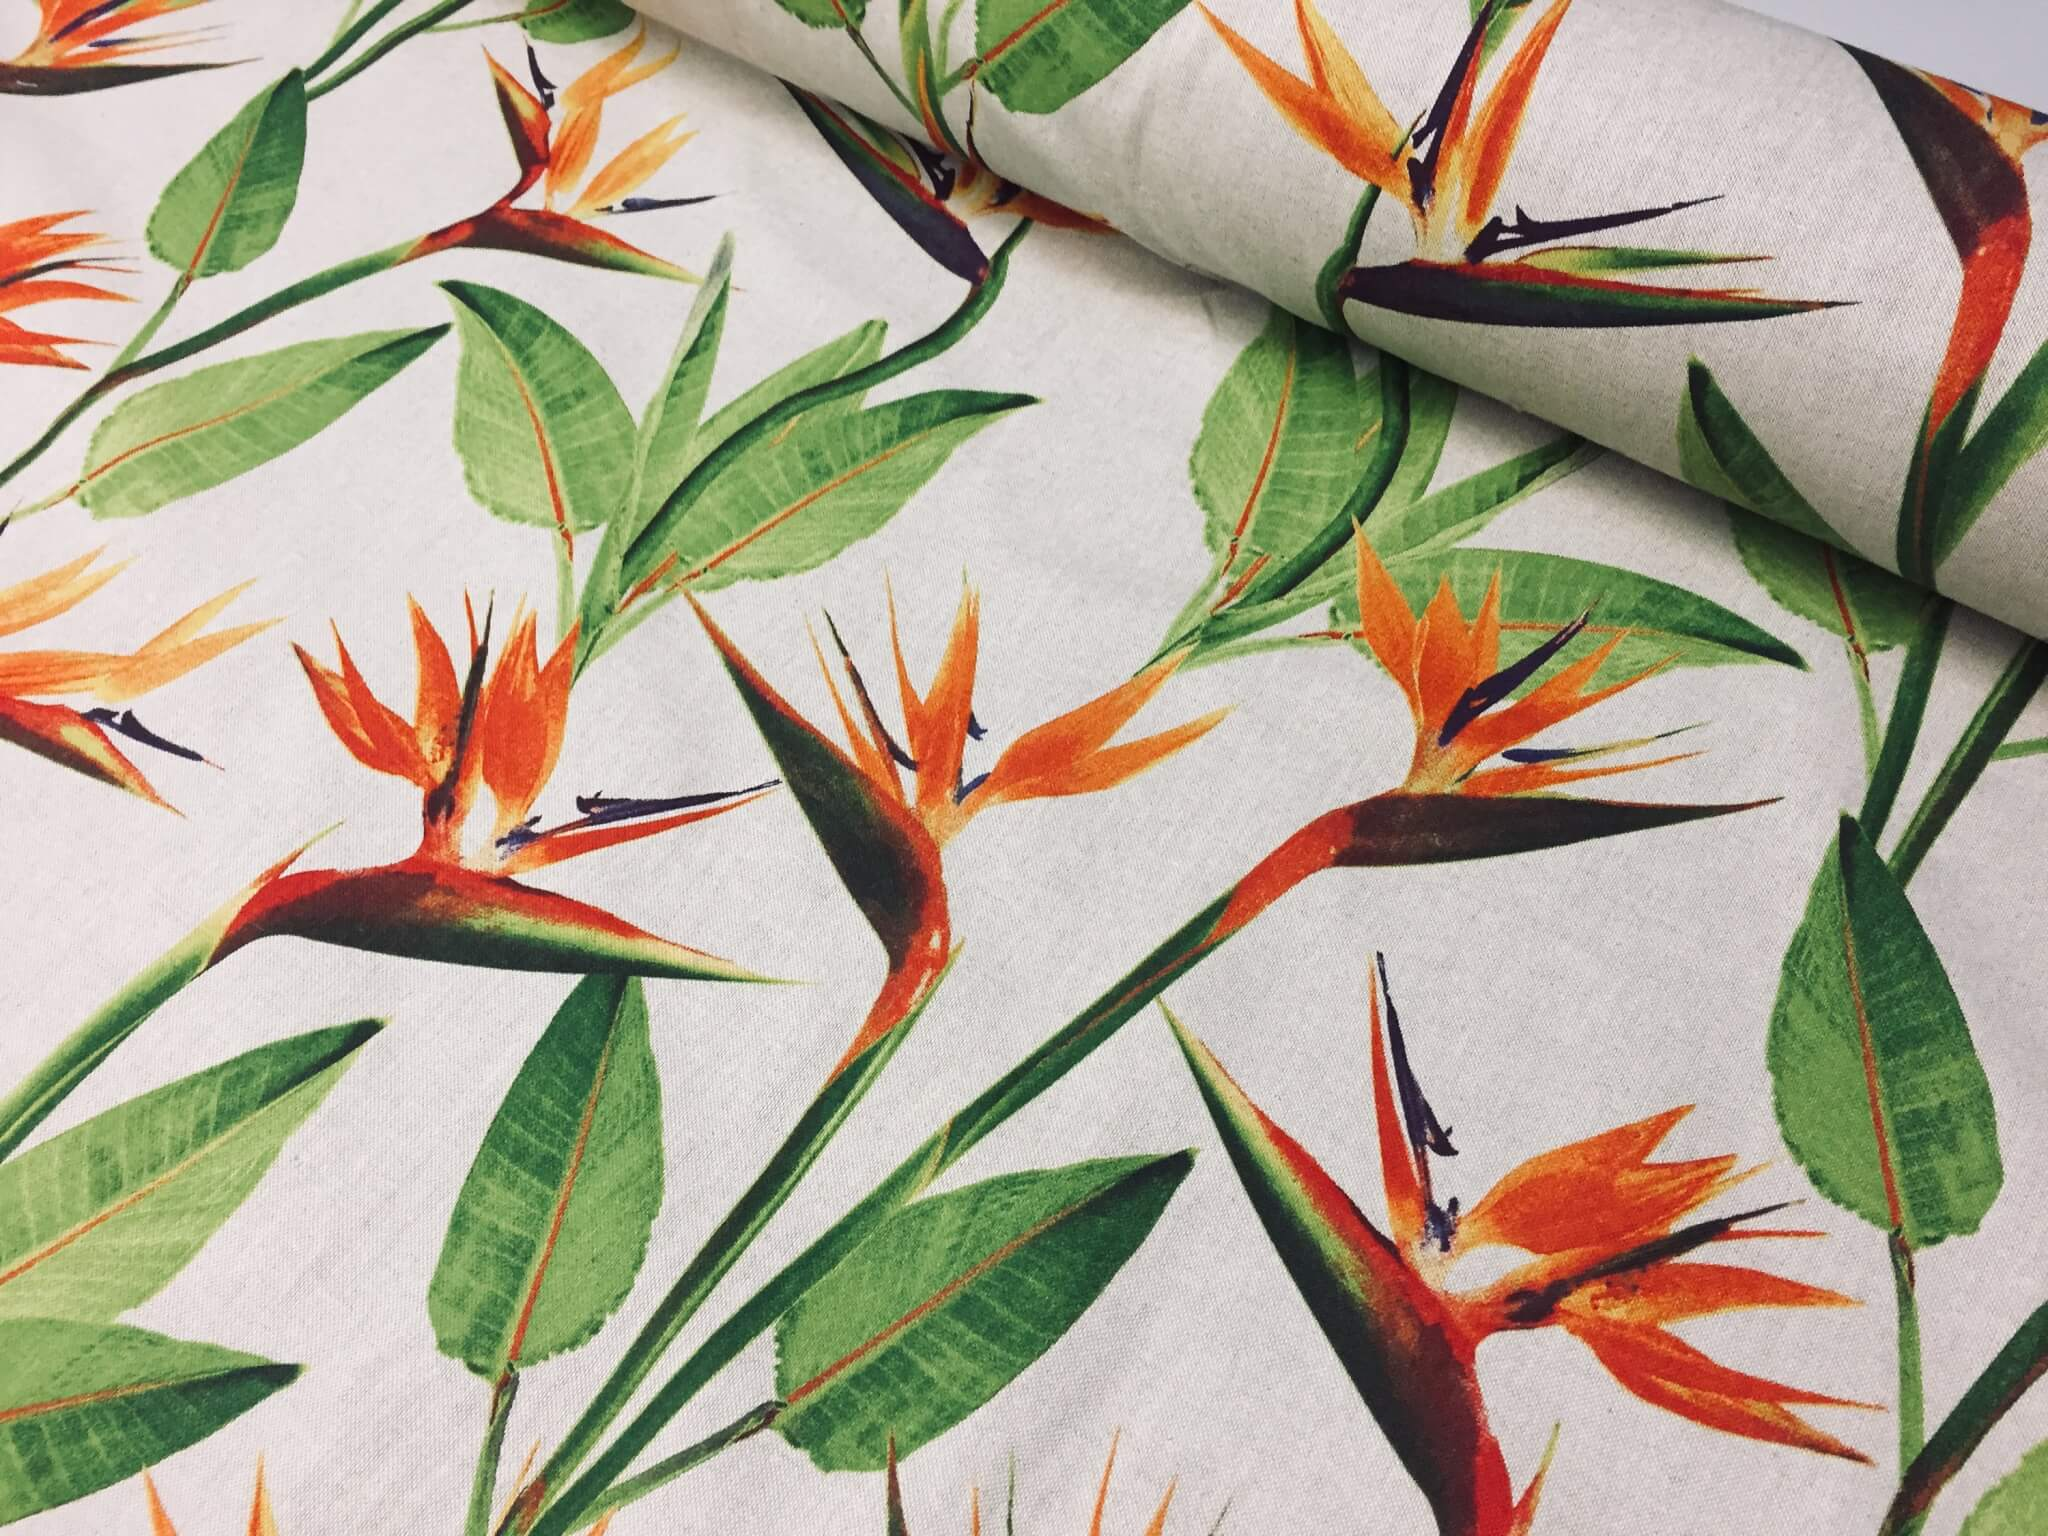 bird-of-paradise-ginger-plant-floral-fabric-orange-curtains-upholstery-140cm-wide-5c069f261.jpg